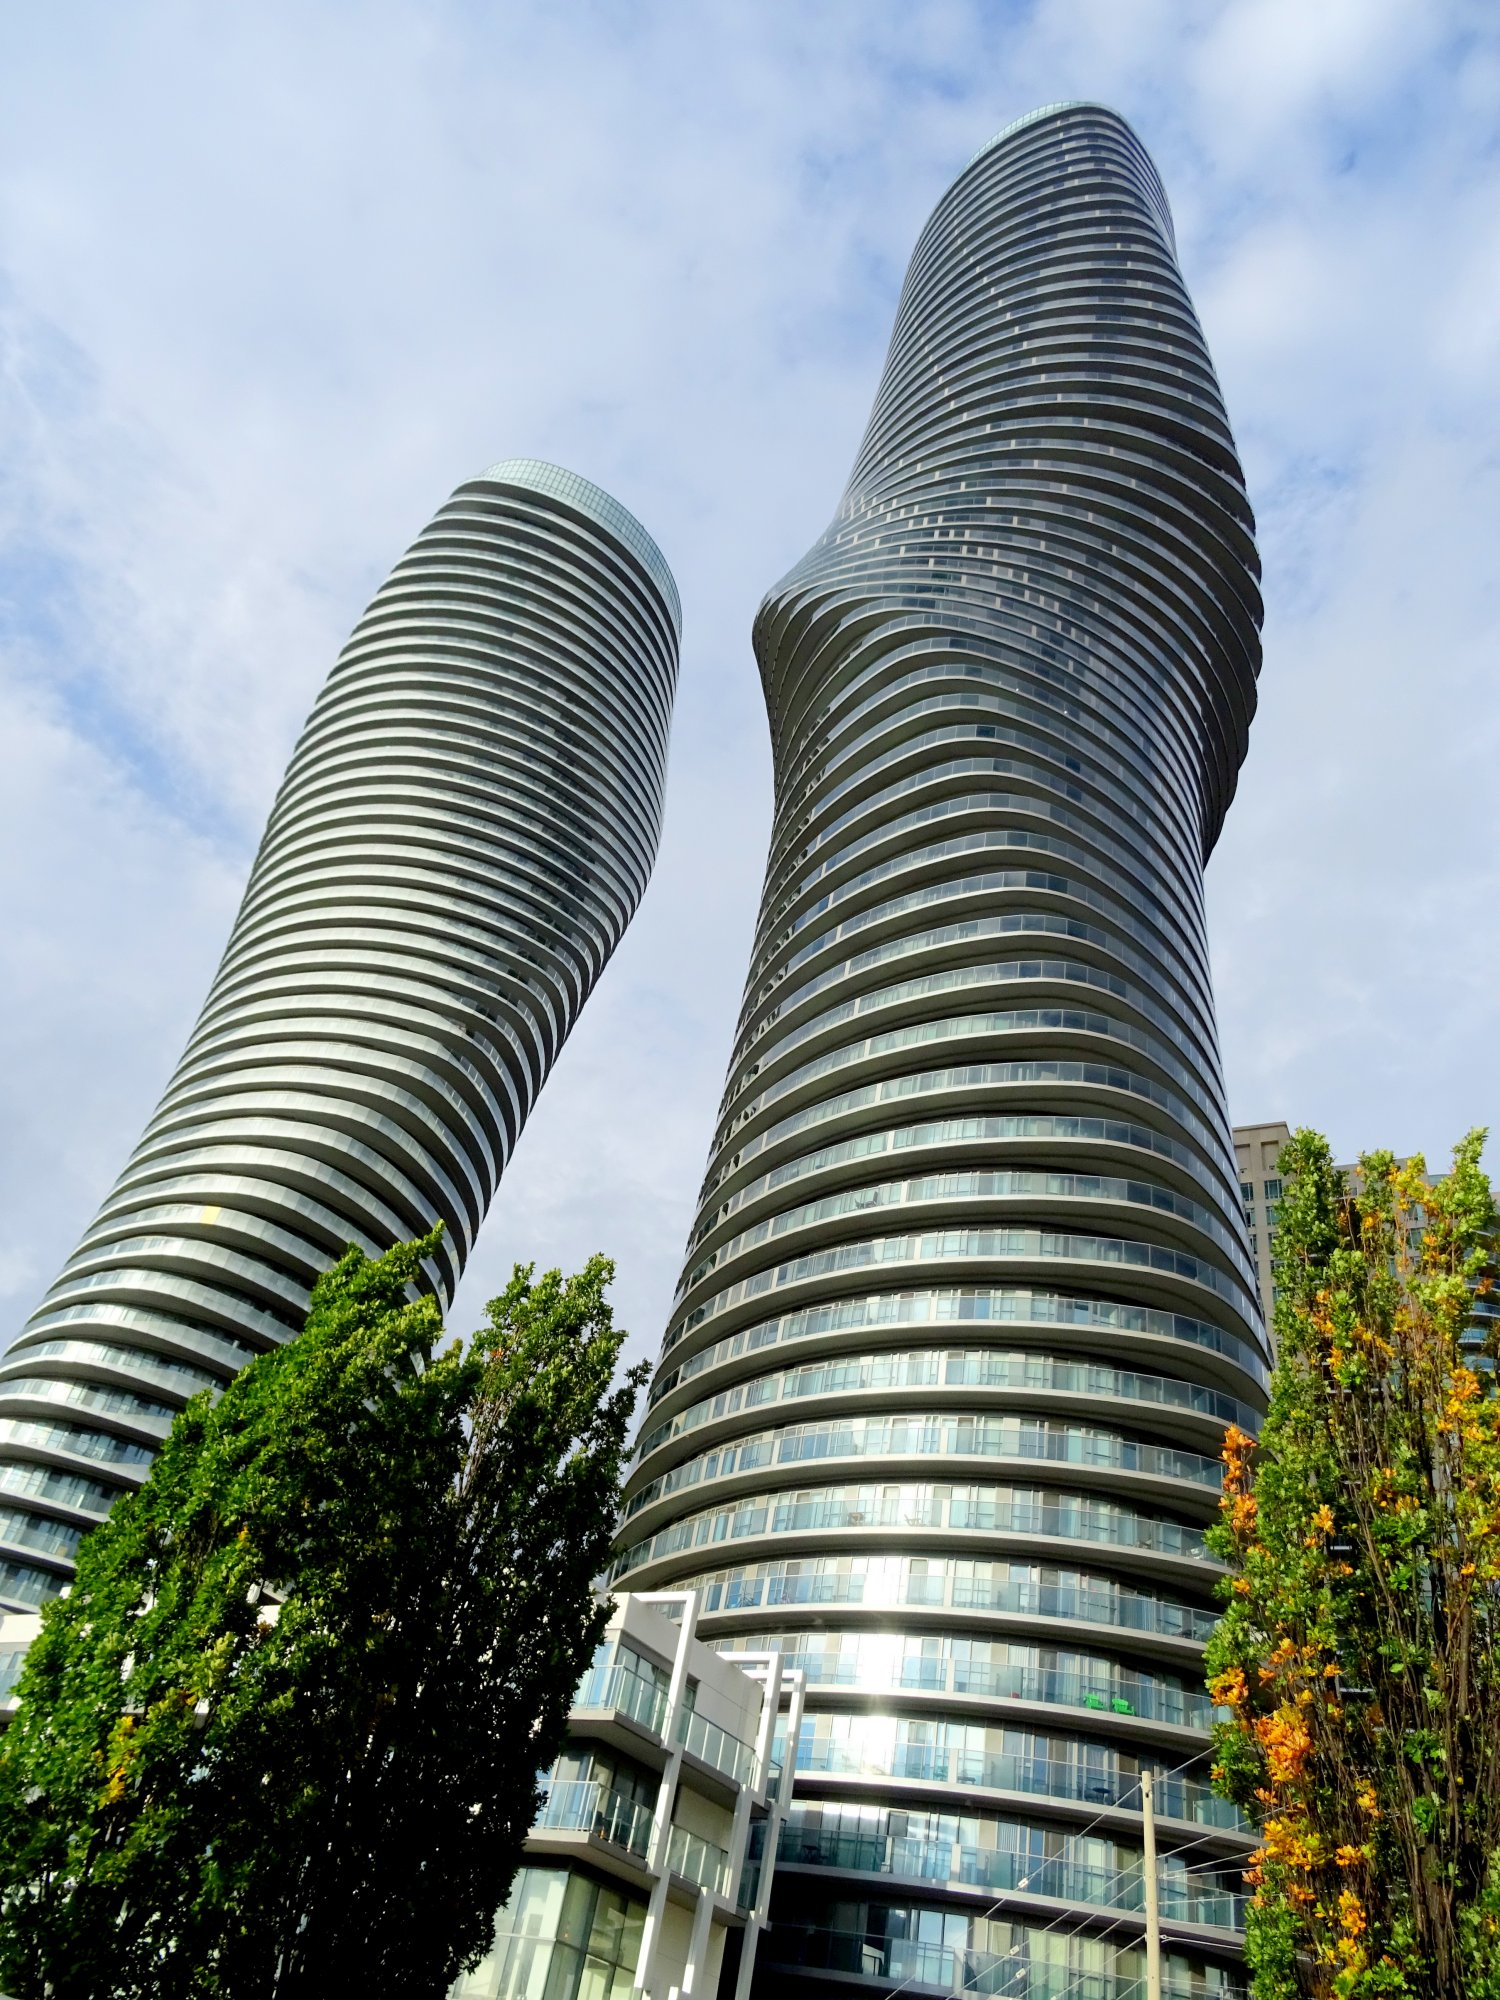 Marilyn Monroe Buildings photo by I Lee, 16 Oct 2016